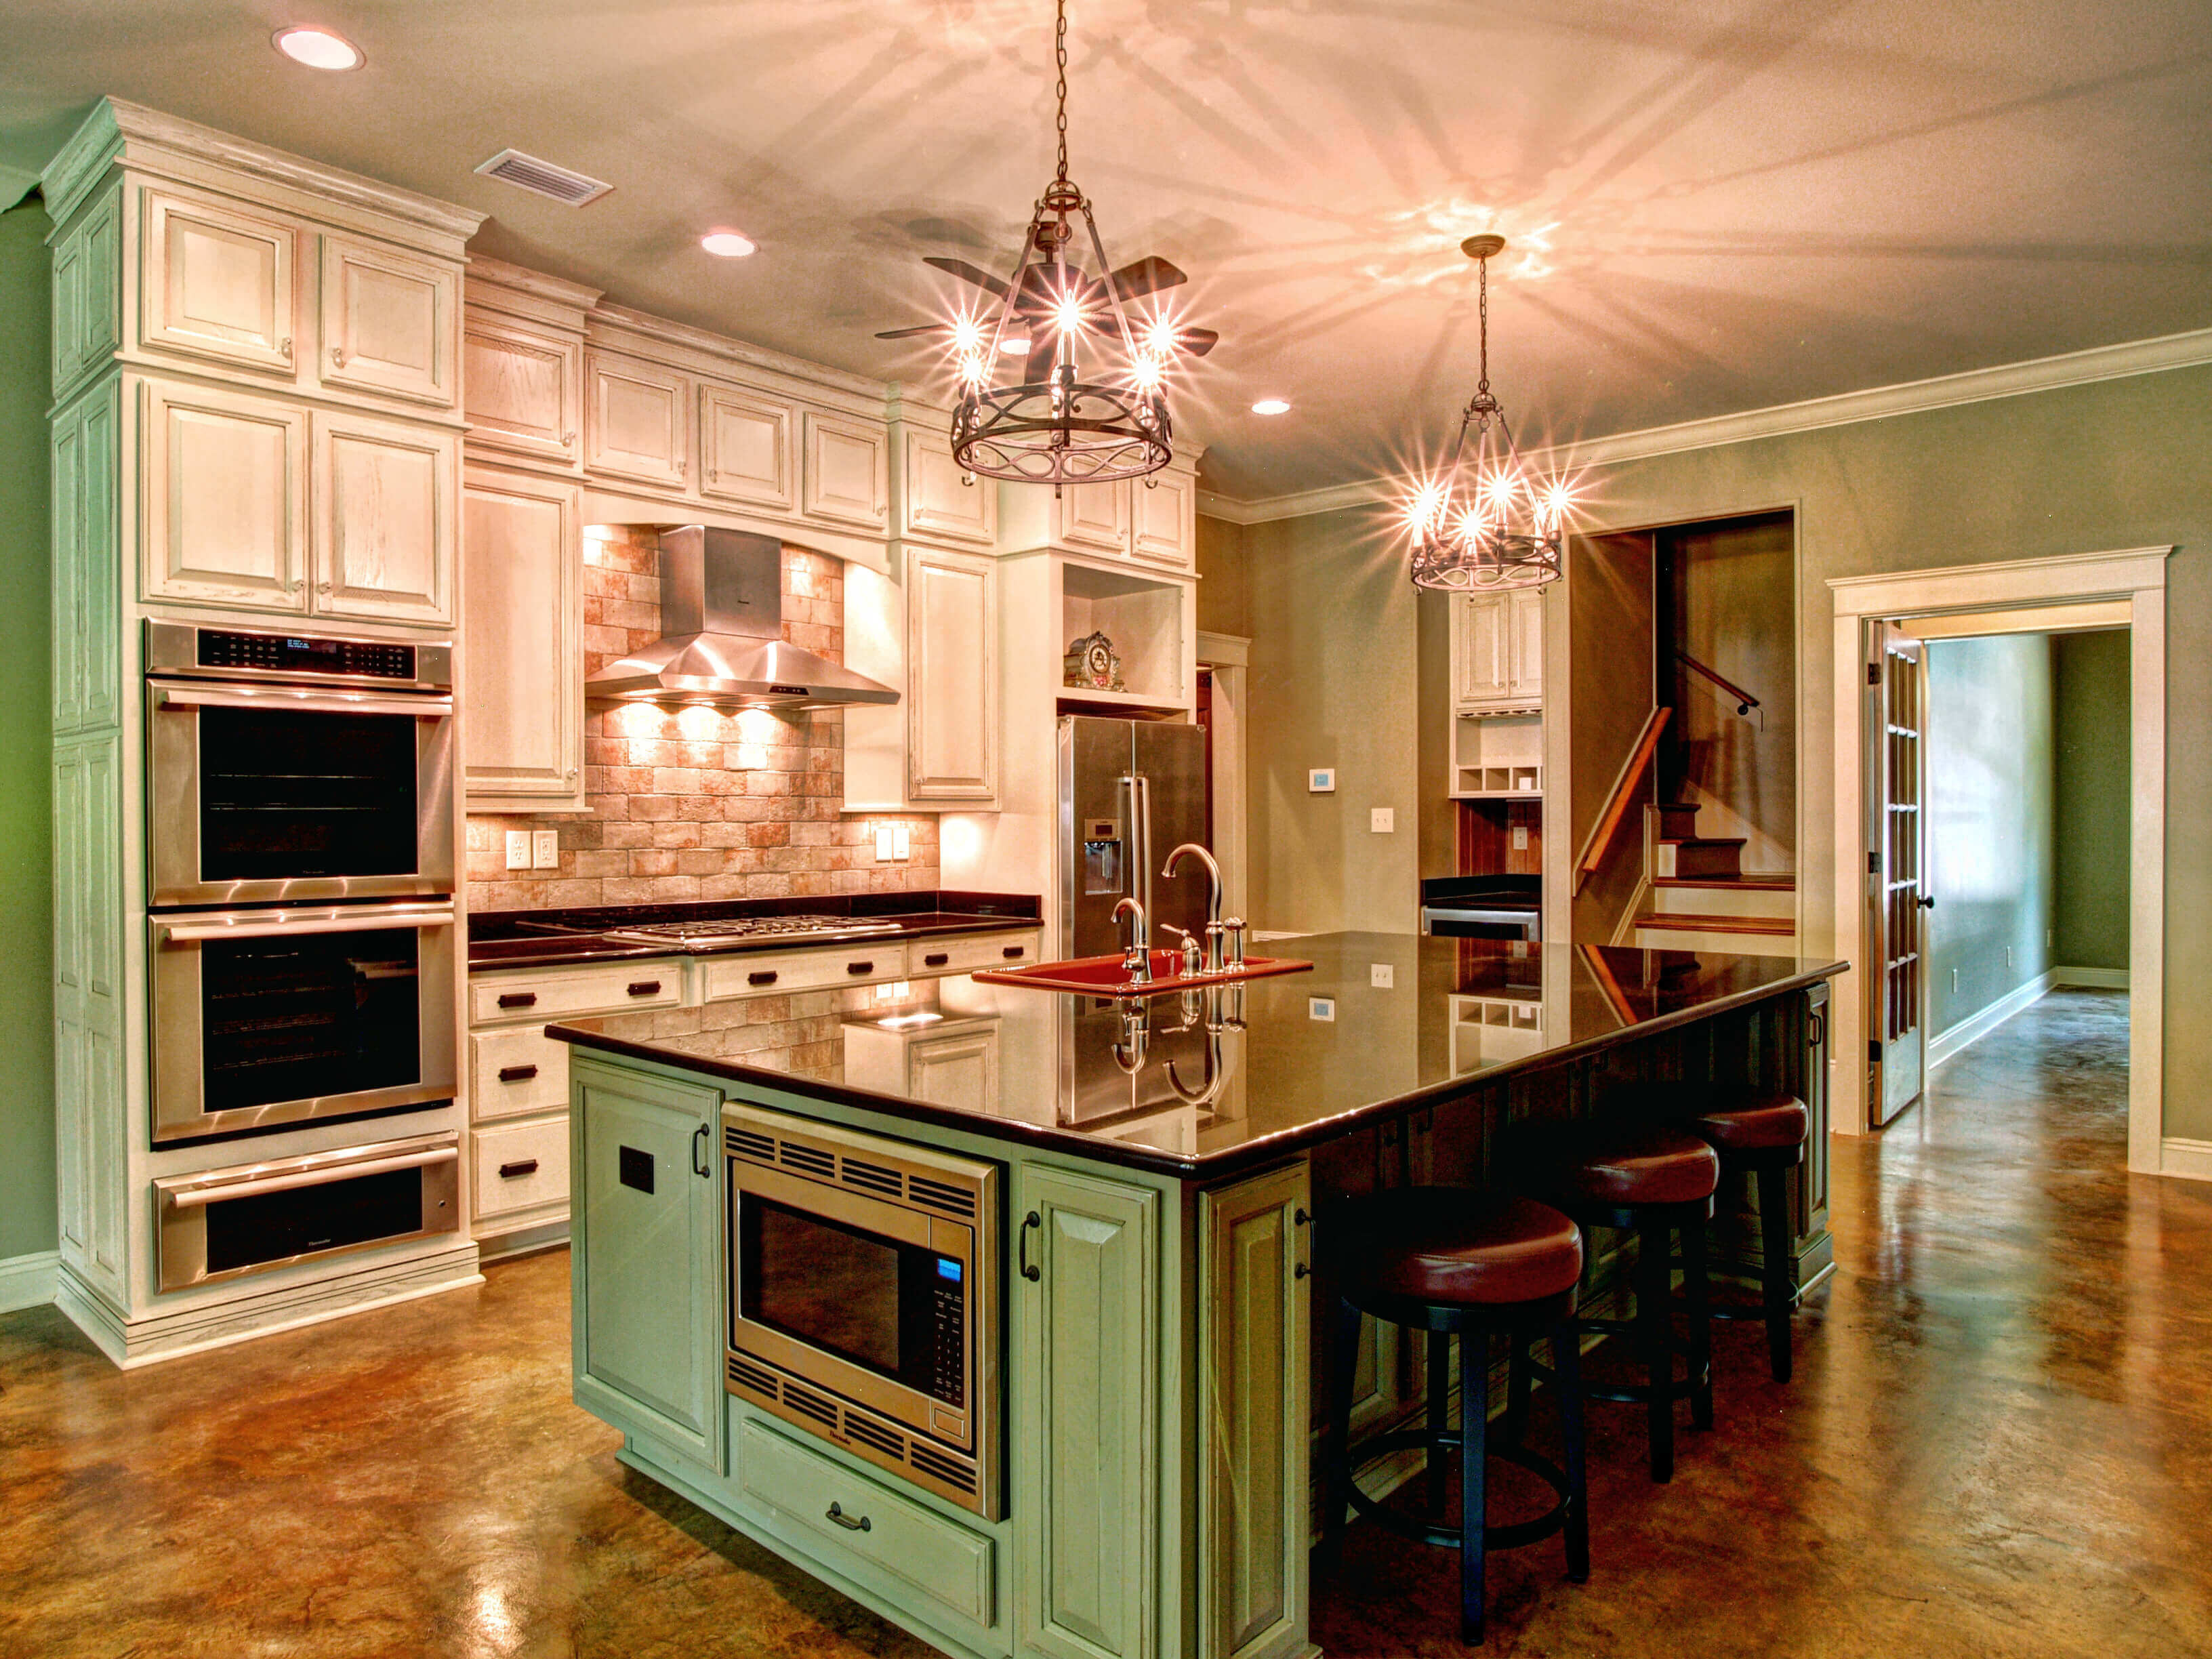 White cabinets, aluminium appliances, marble countertops, and luxury kitchen backsplash pictures are put together to create a homely kitchen design. Under hood lighting, pendant and recessed lighting fixtures provide brightness in the otherwise dark room